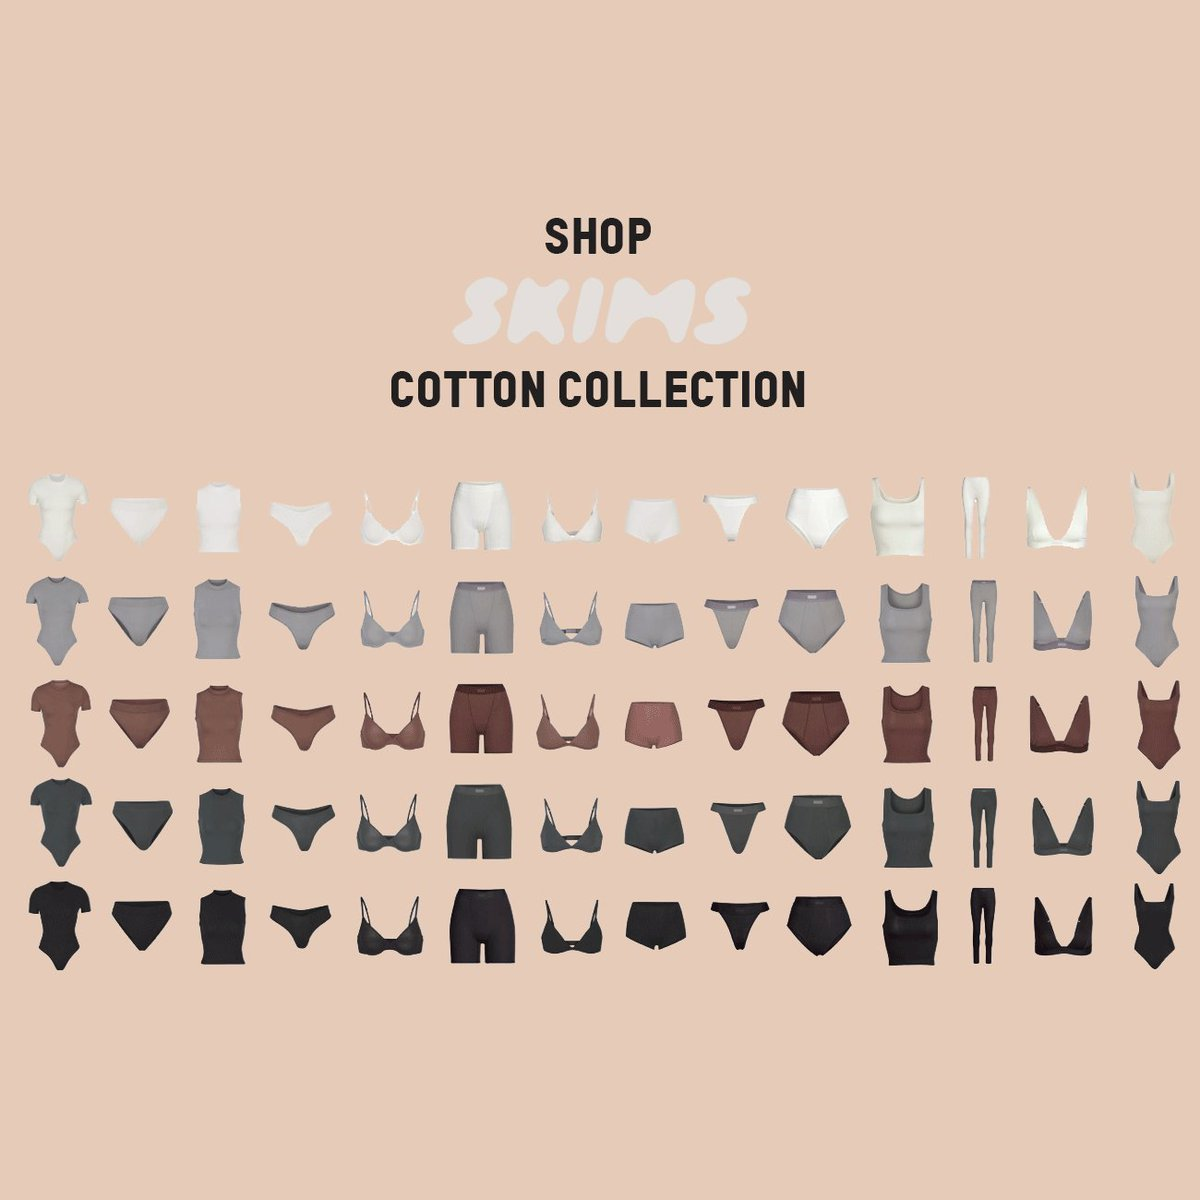 Replying to @KKWMAFIA: Shop @SKIMS Cotton Collection now only at .